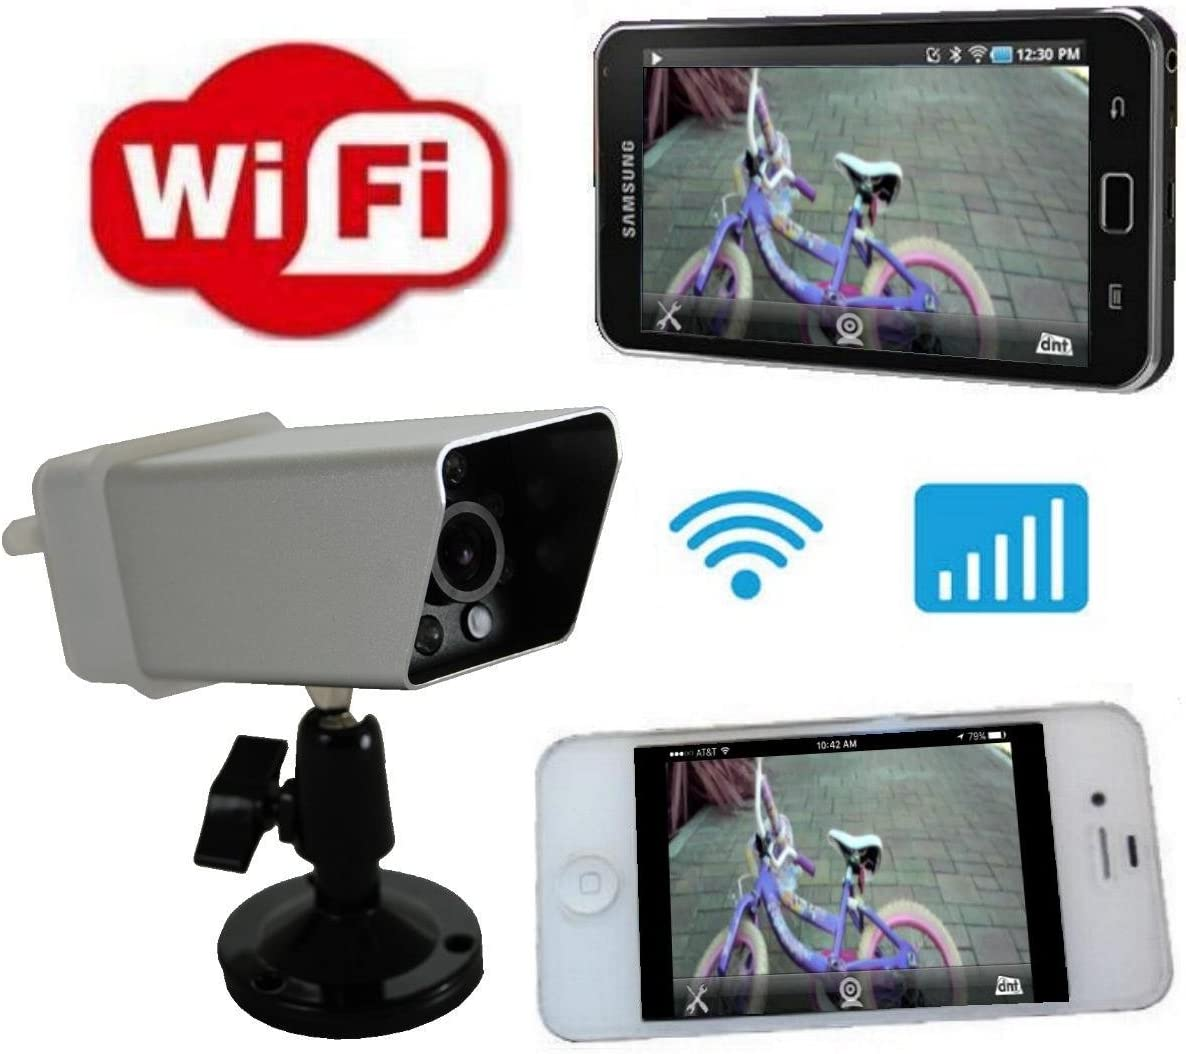 4UCam Portable WiFi Backup Camera for iPhone/iPad and Android